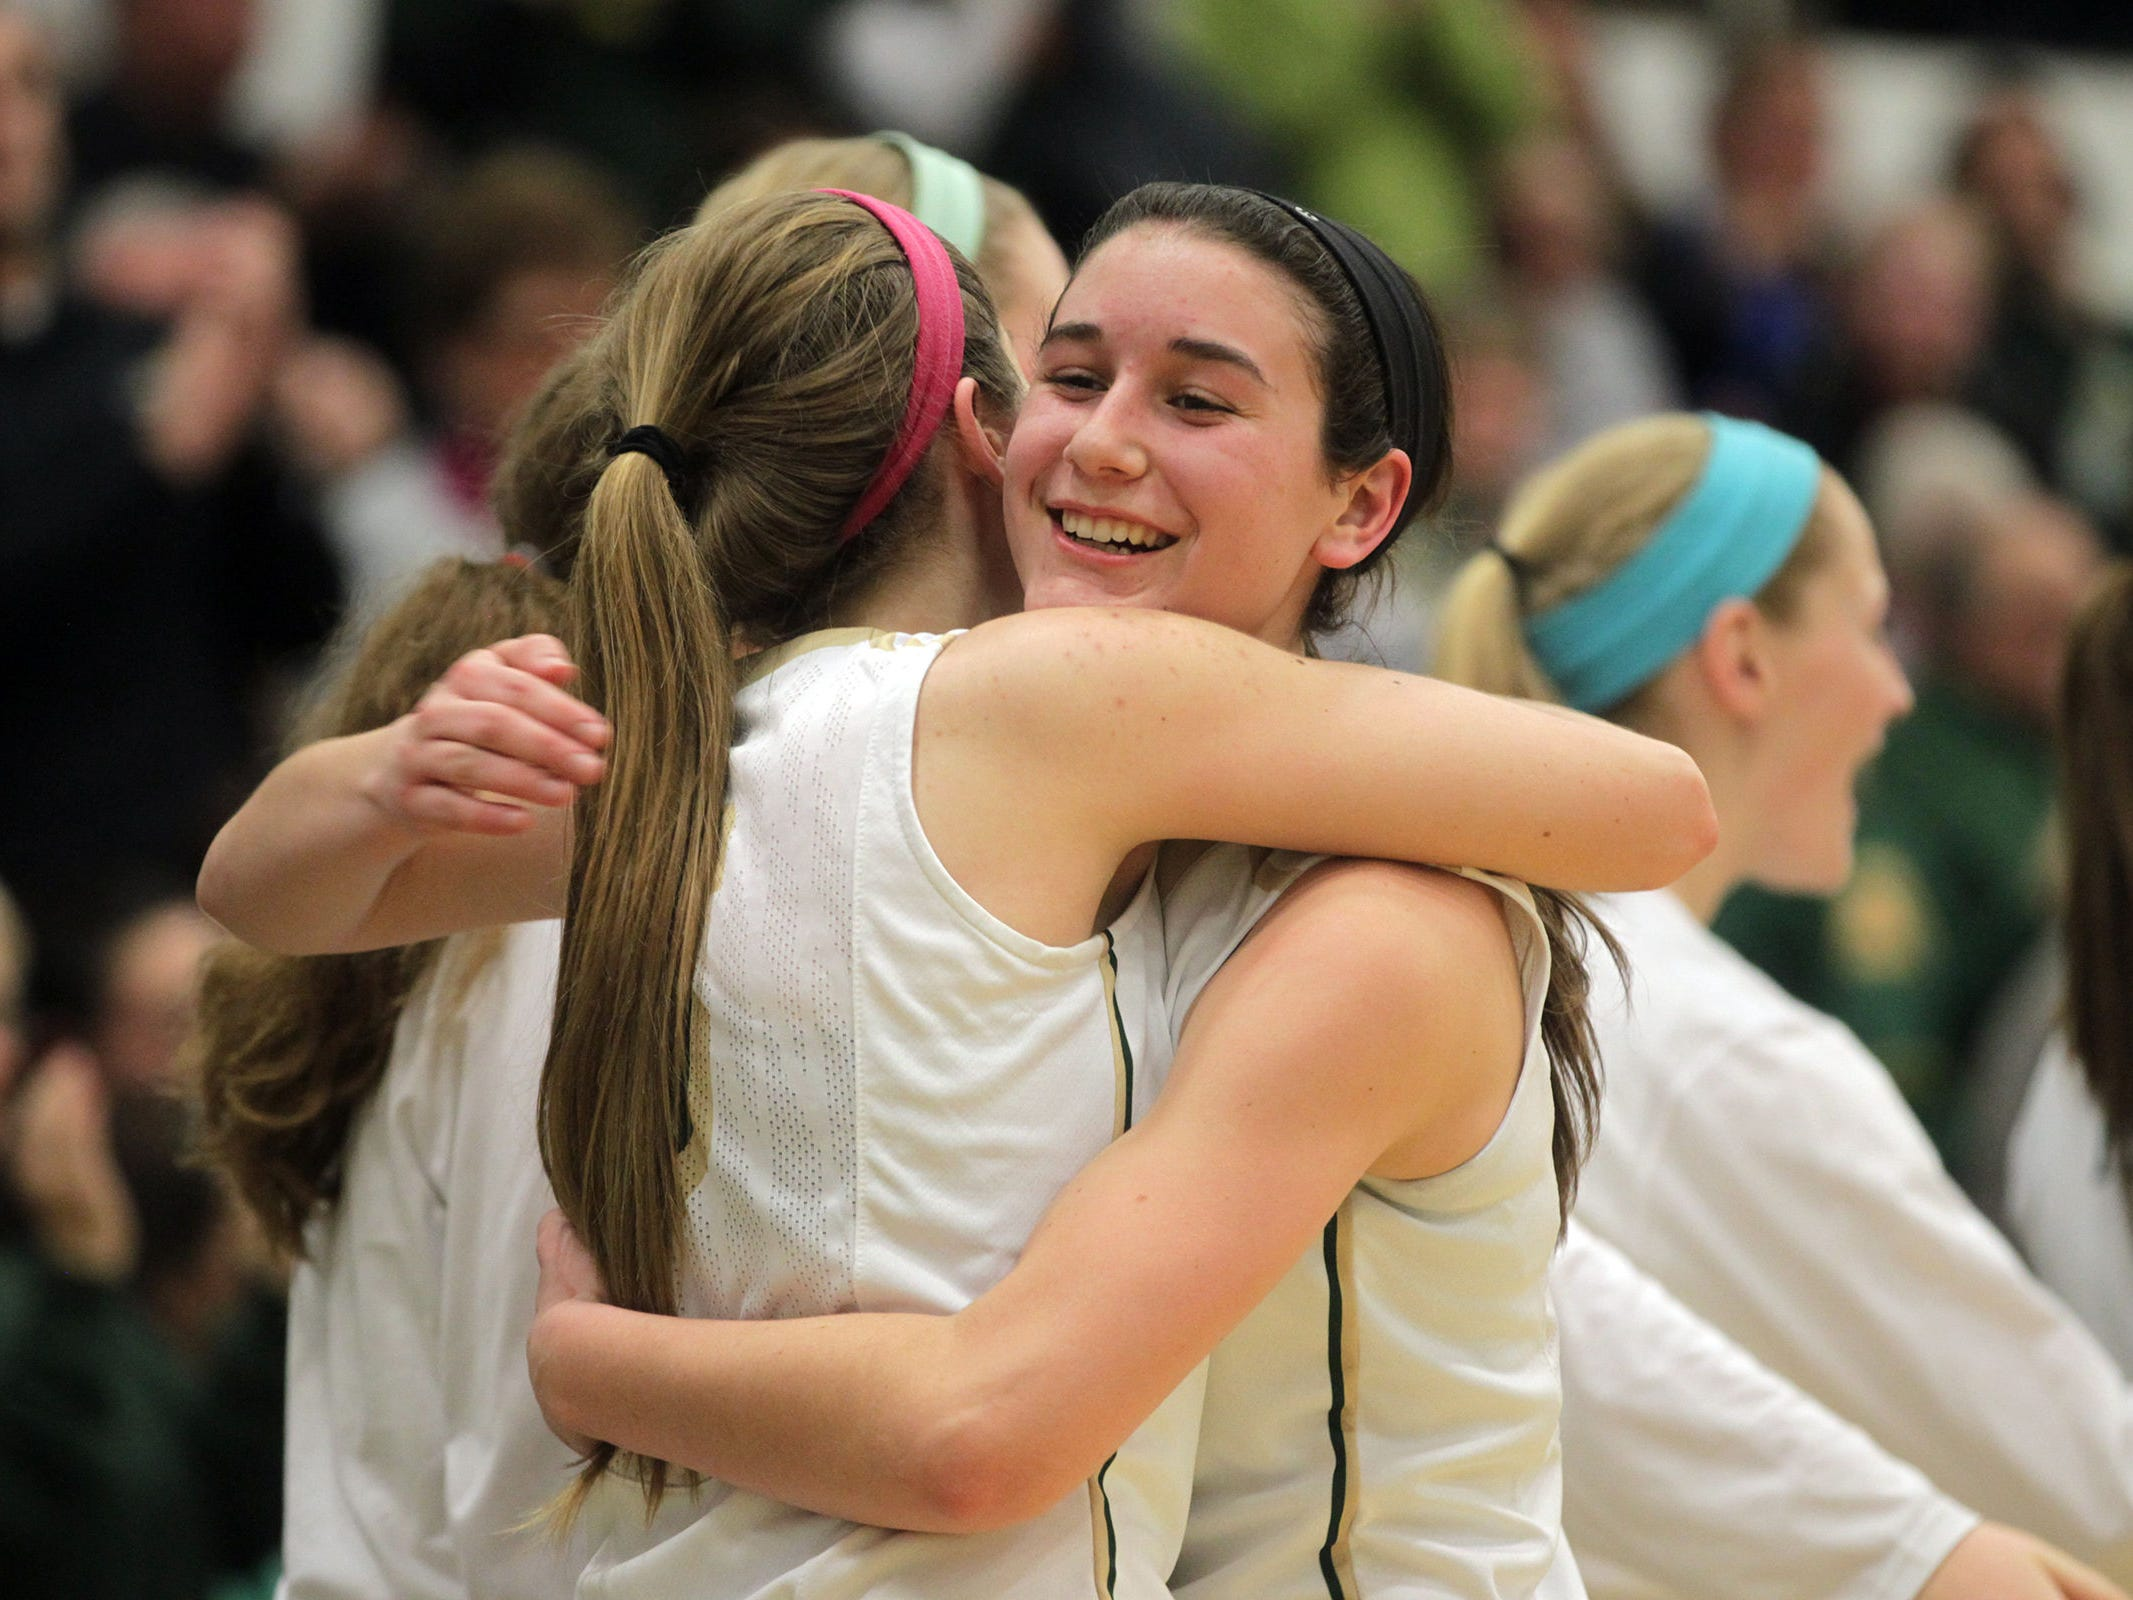 West High senior Dani Craig, right, hugs classmate Grace Tafolla in the final minute of the Women of Troy's Class 5A regional final against Pleasant Valley on Tuesday, Feb. 24, 2015. West High won, 45-27, to advance to the state tournament. David Scrivner / Iowa City Press-Citizen